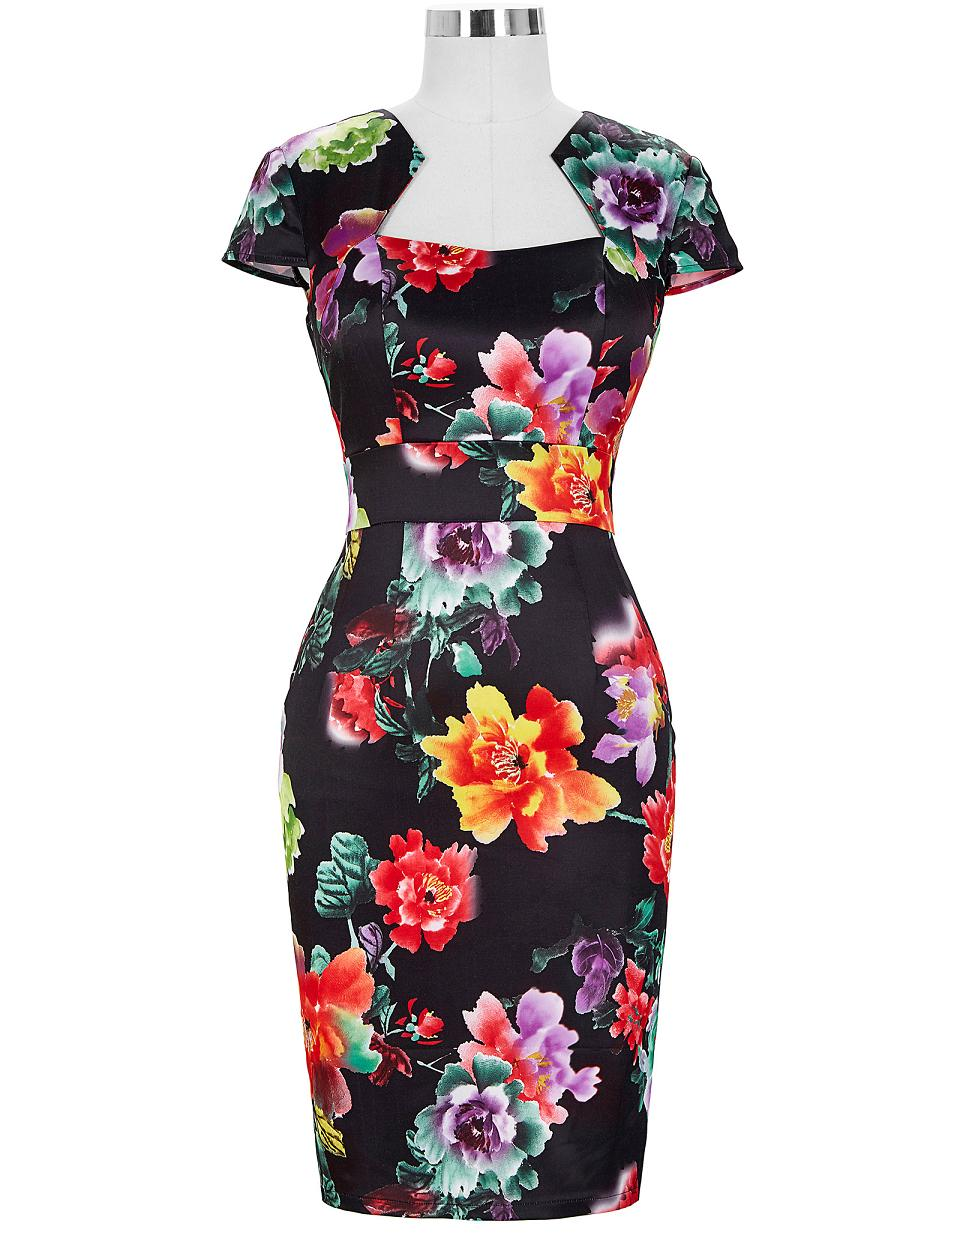 067db1b65dd Women Plus Size Pencil Dresses Rockabilly Clothing 2018 Floral Summer  Casual Party Office Dress Sexy 50s